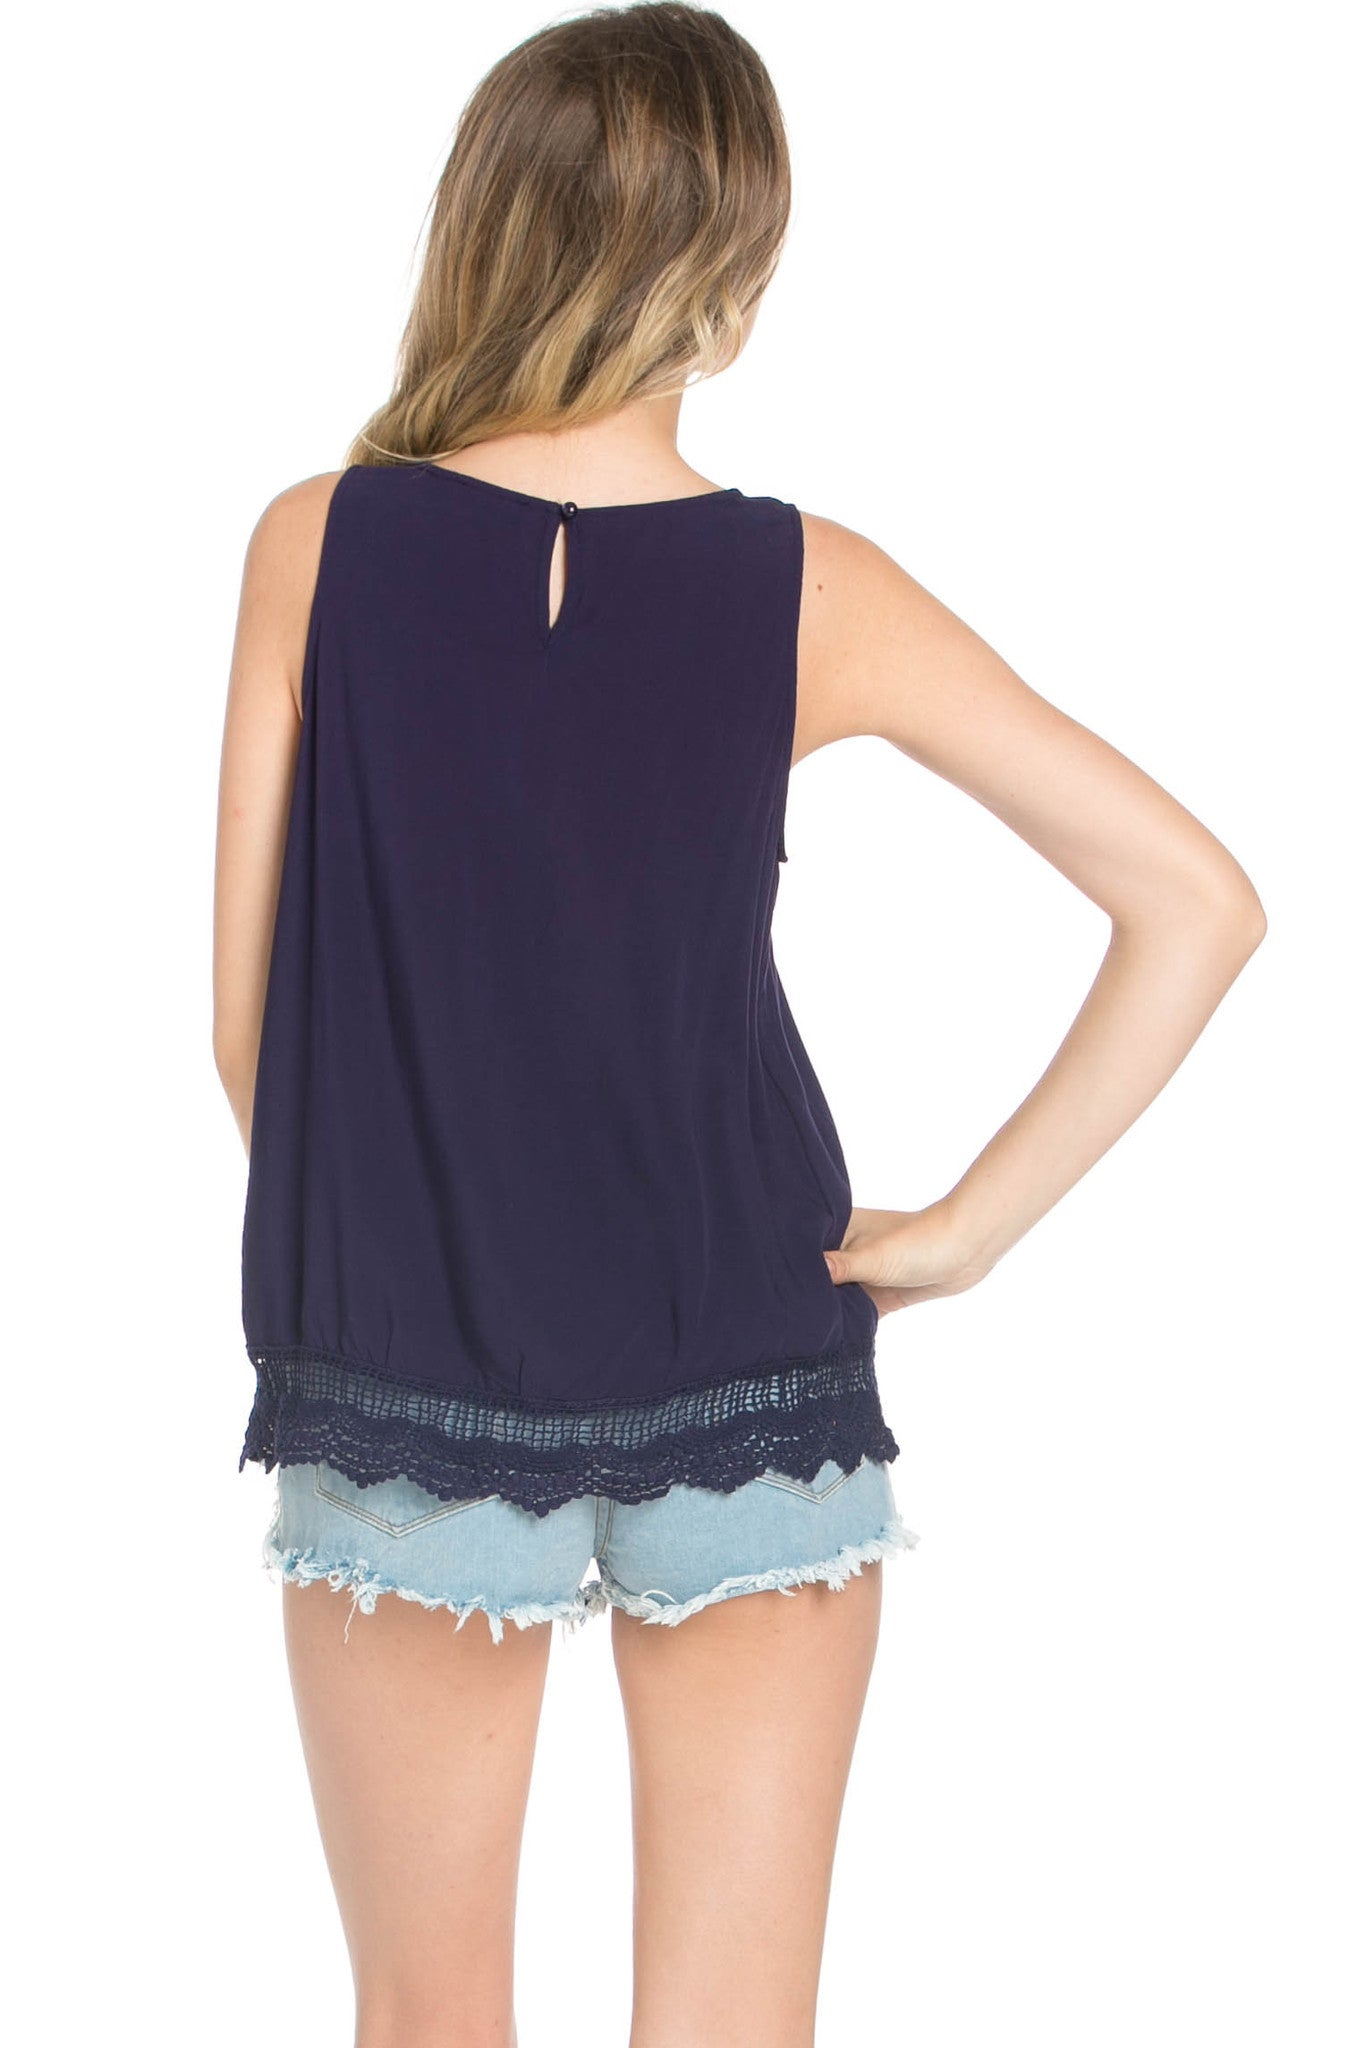 Crochets and Lace Navy Top - Tops - My Yuccie - 3